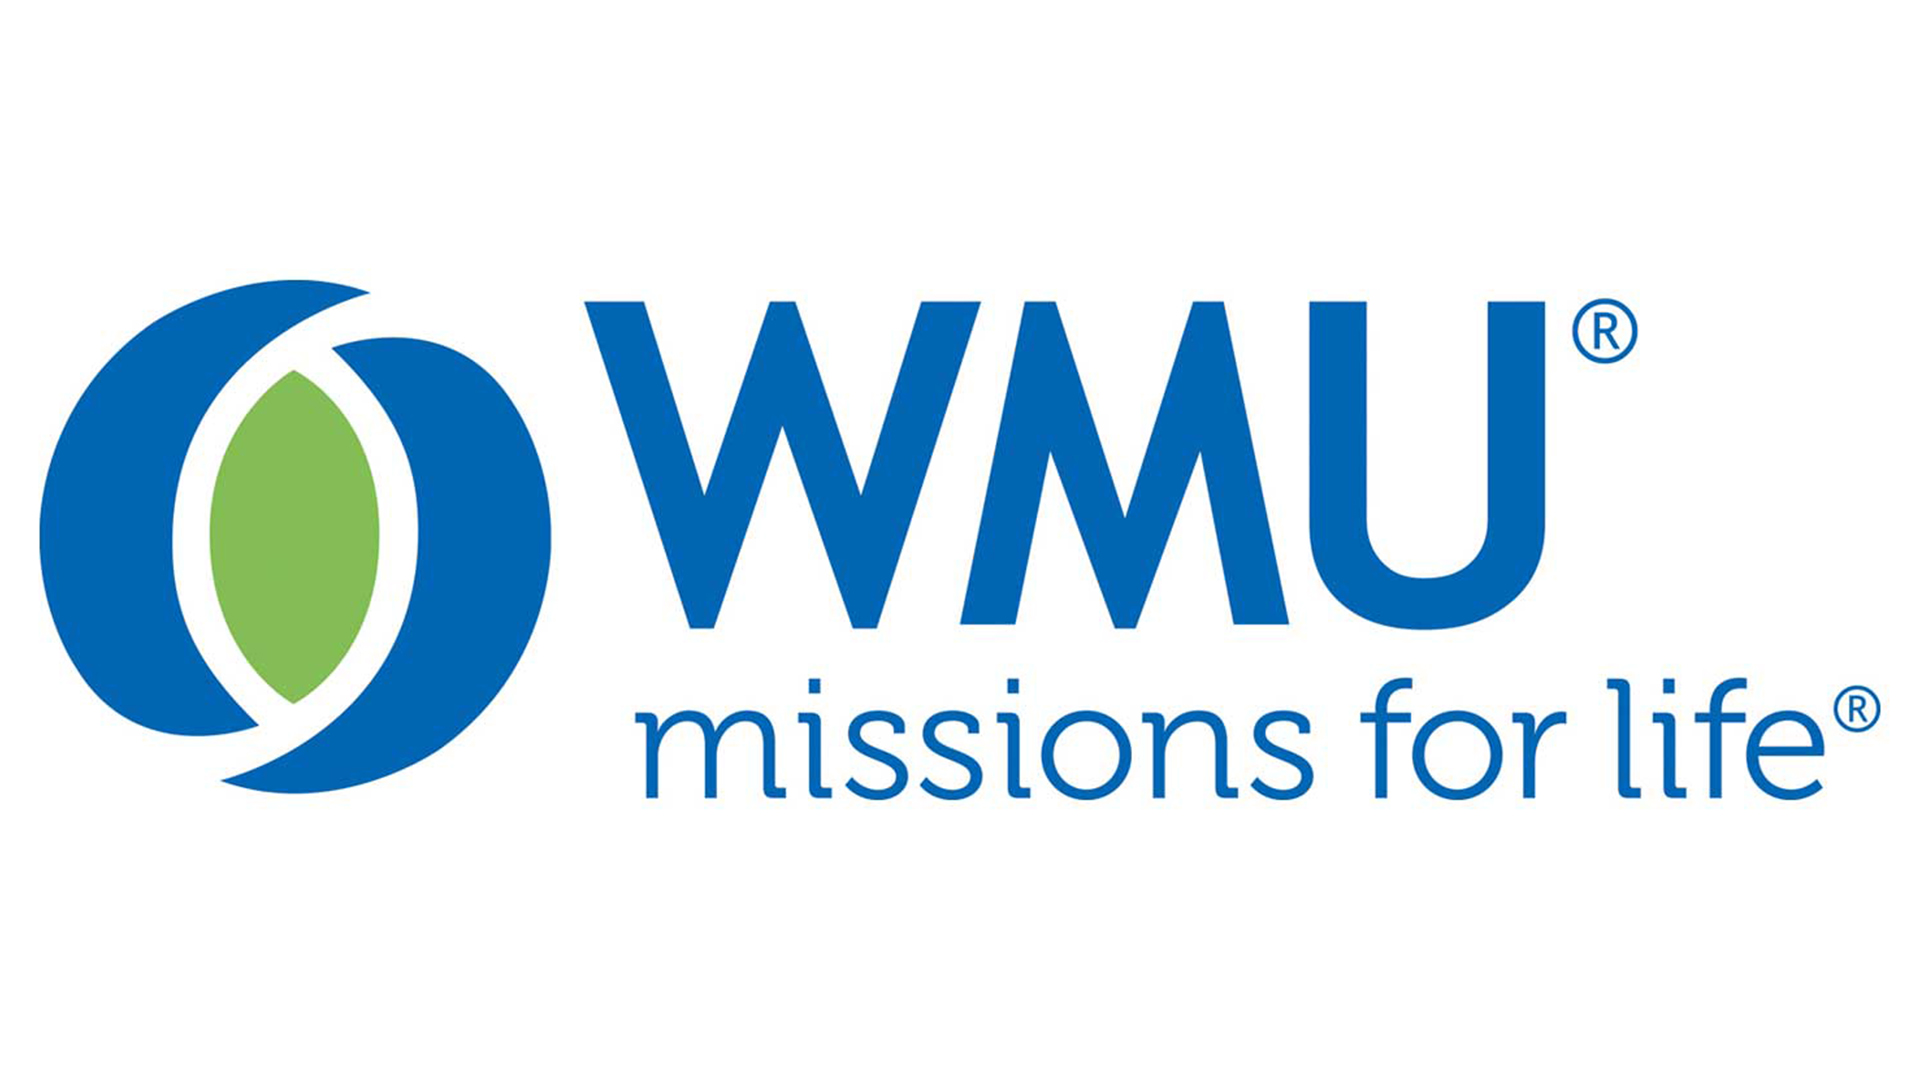 WMU House - WMU makes disciples of Jesus who live on mission.